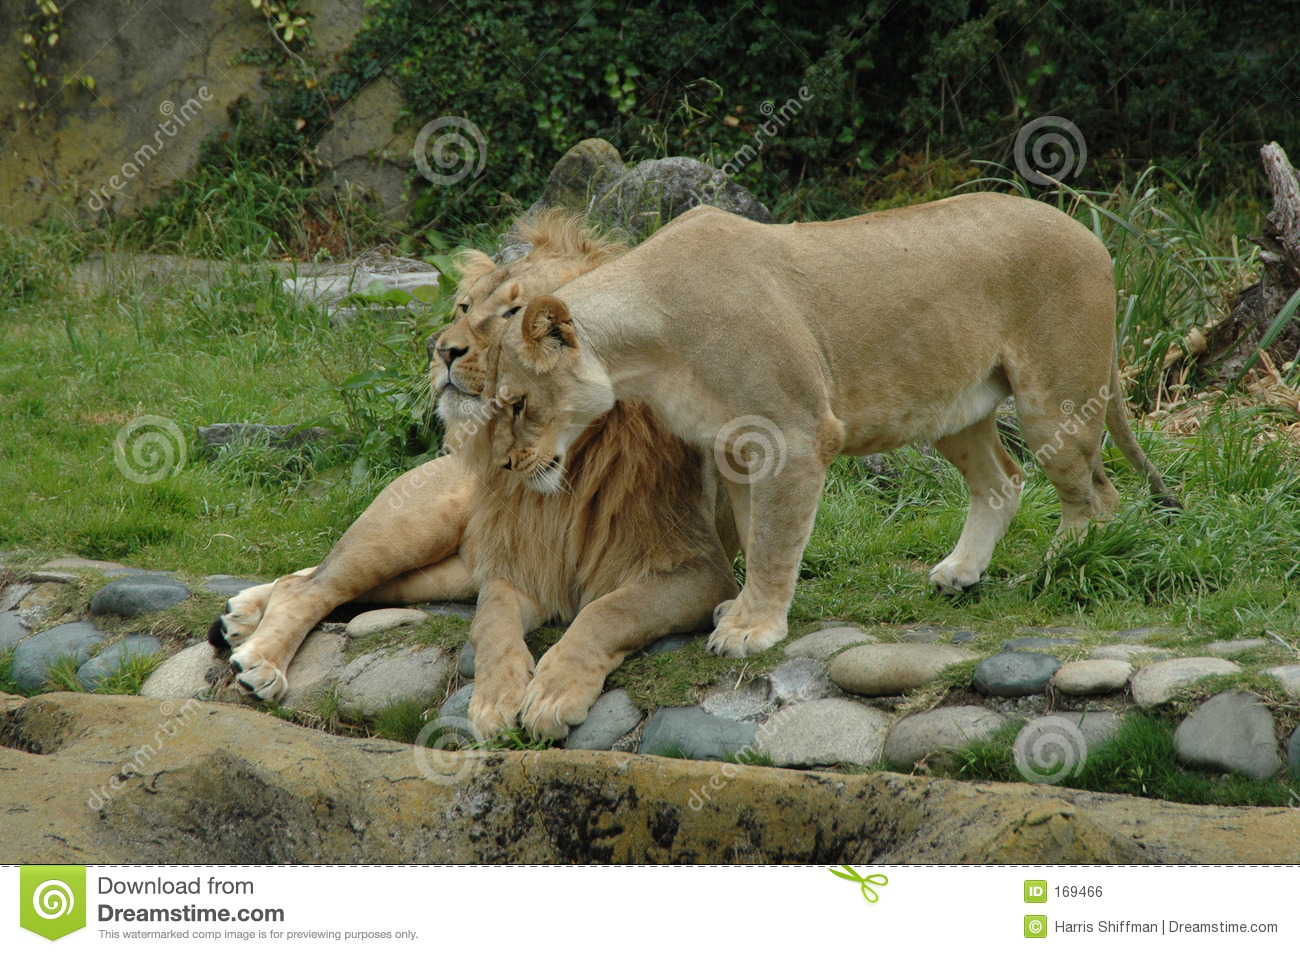 Lioness and lion cuddling